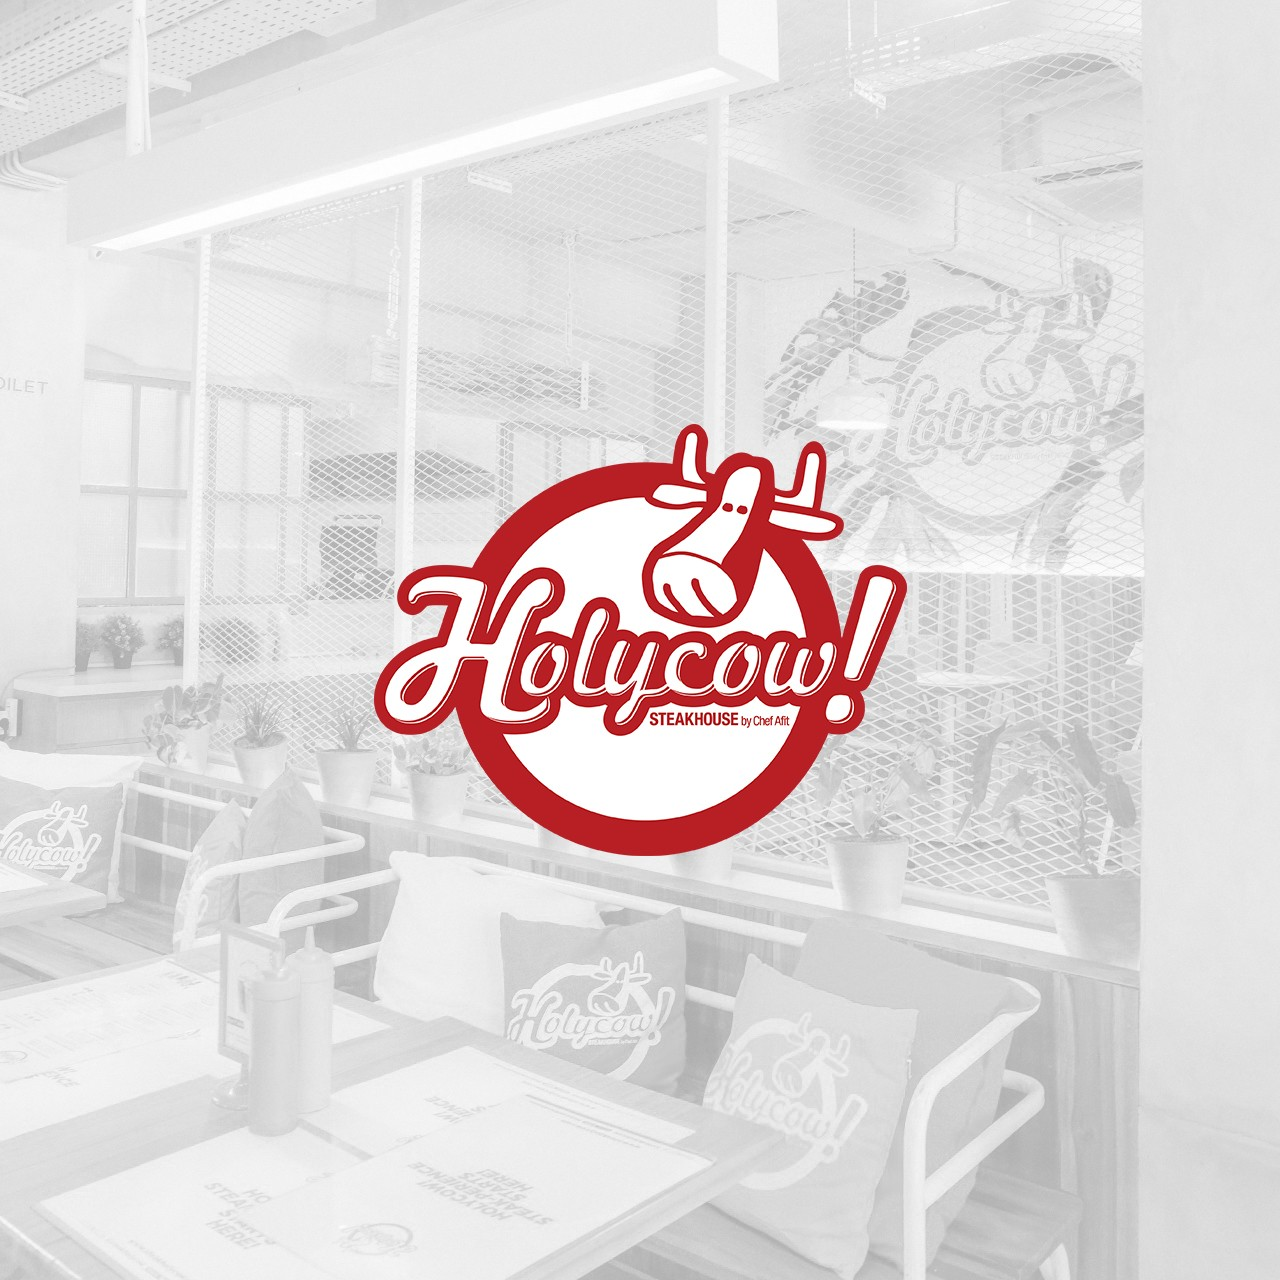 History Of Holycow! STEAKHOUSE By Chef Afit